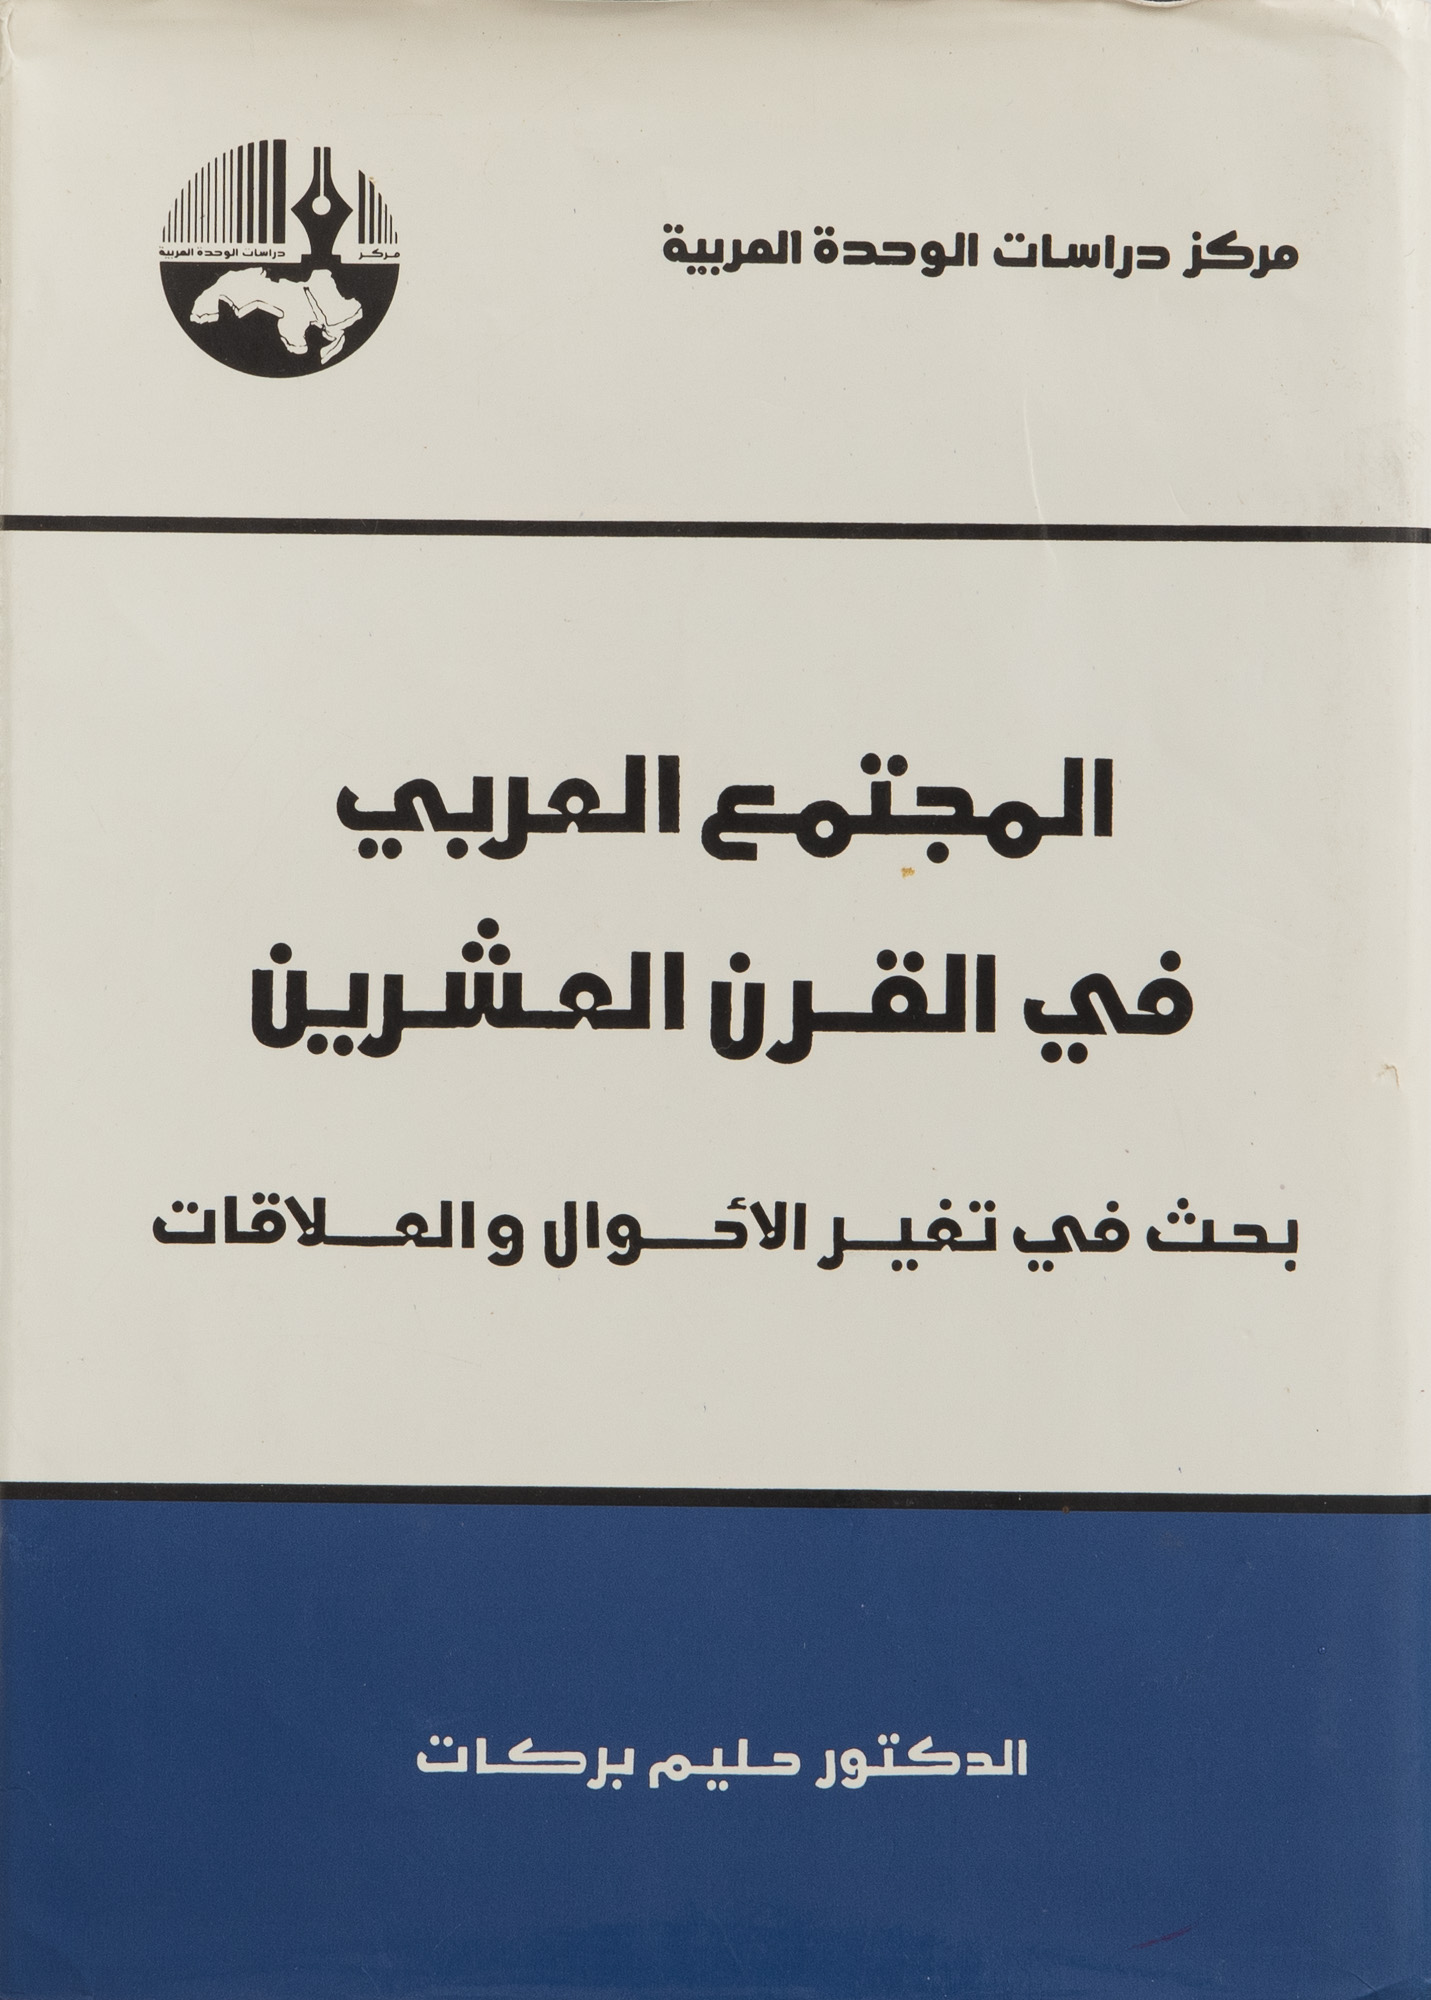 The cover of the book The Arab World: Society, Culture, and State